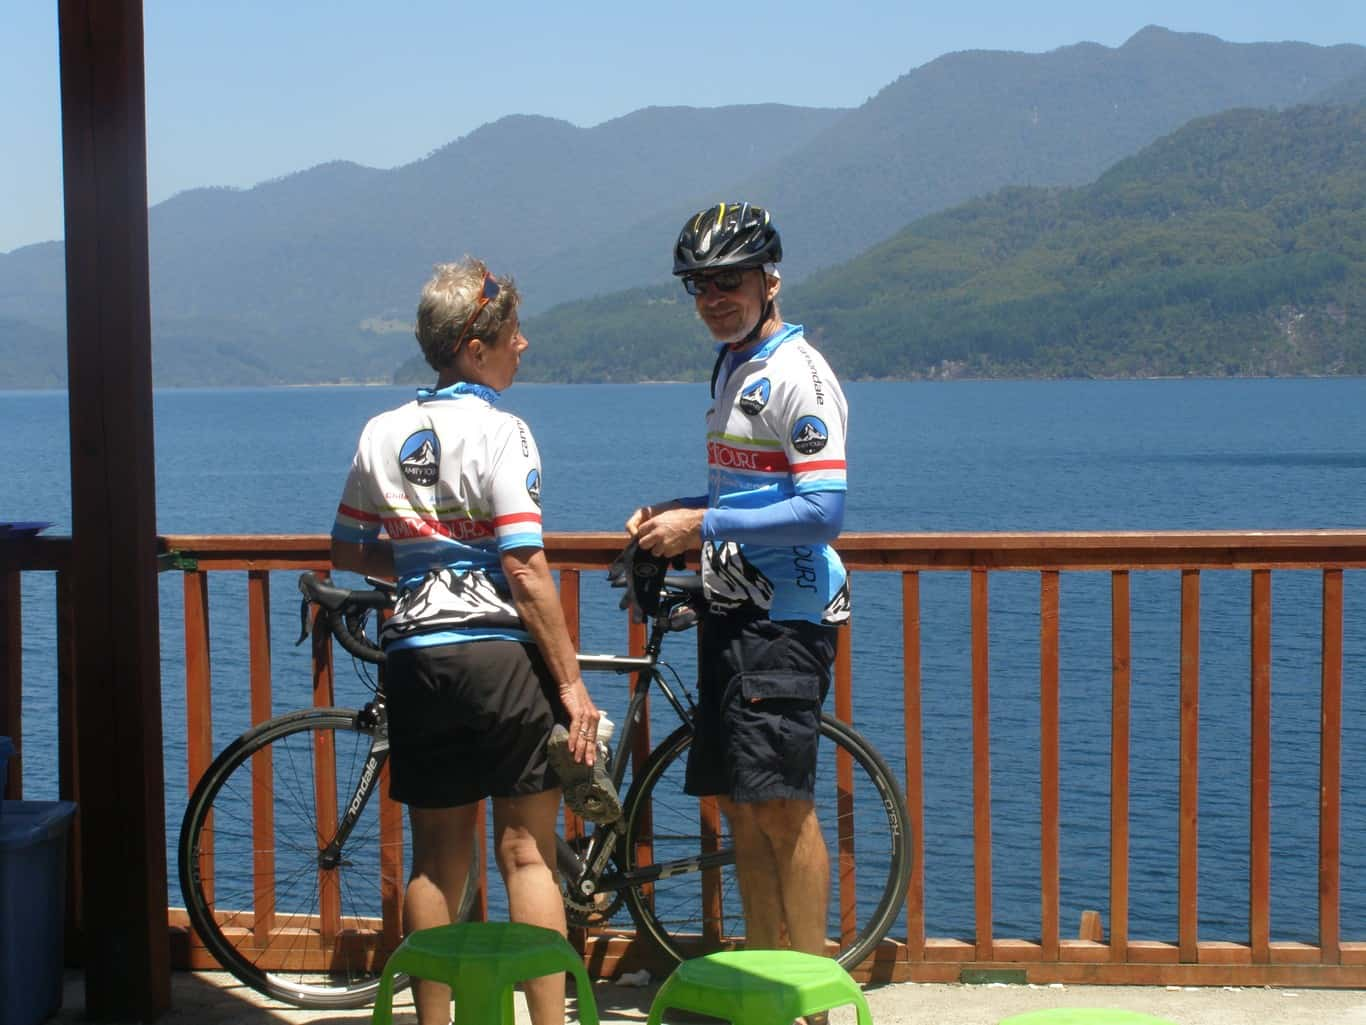 Bike Ride The Lake and Volcano Scenic Route - The 7 Lakes Circuit